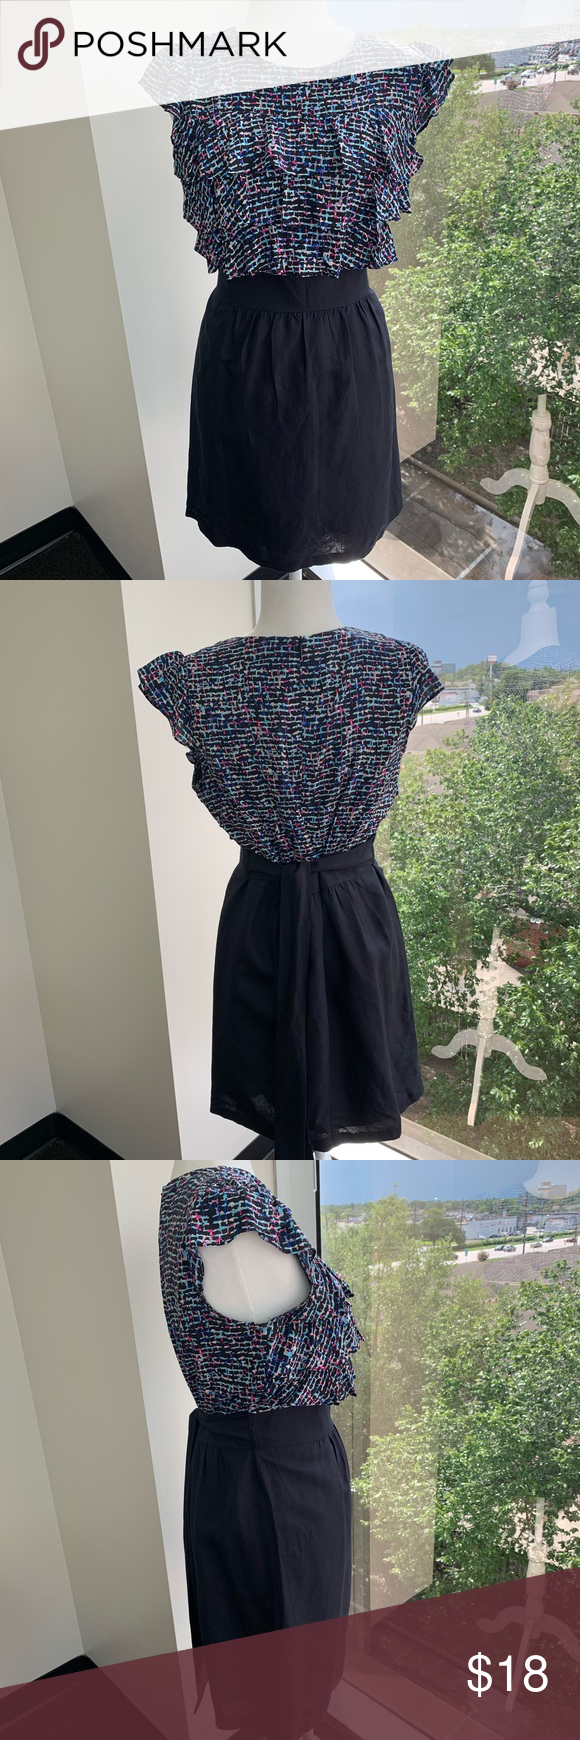 Navy blue pink and white, short dress Navy blue pink and white, short dress, and short sleeves. Super cute for those fun summer parties. Looks brand new. See pictures for more details. 213 Dresses Mini #navyblueshortdress